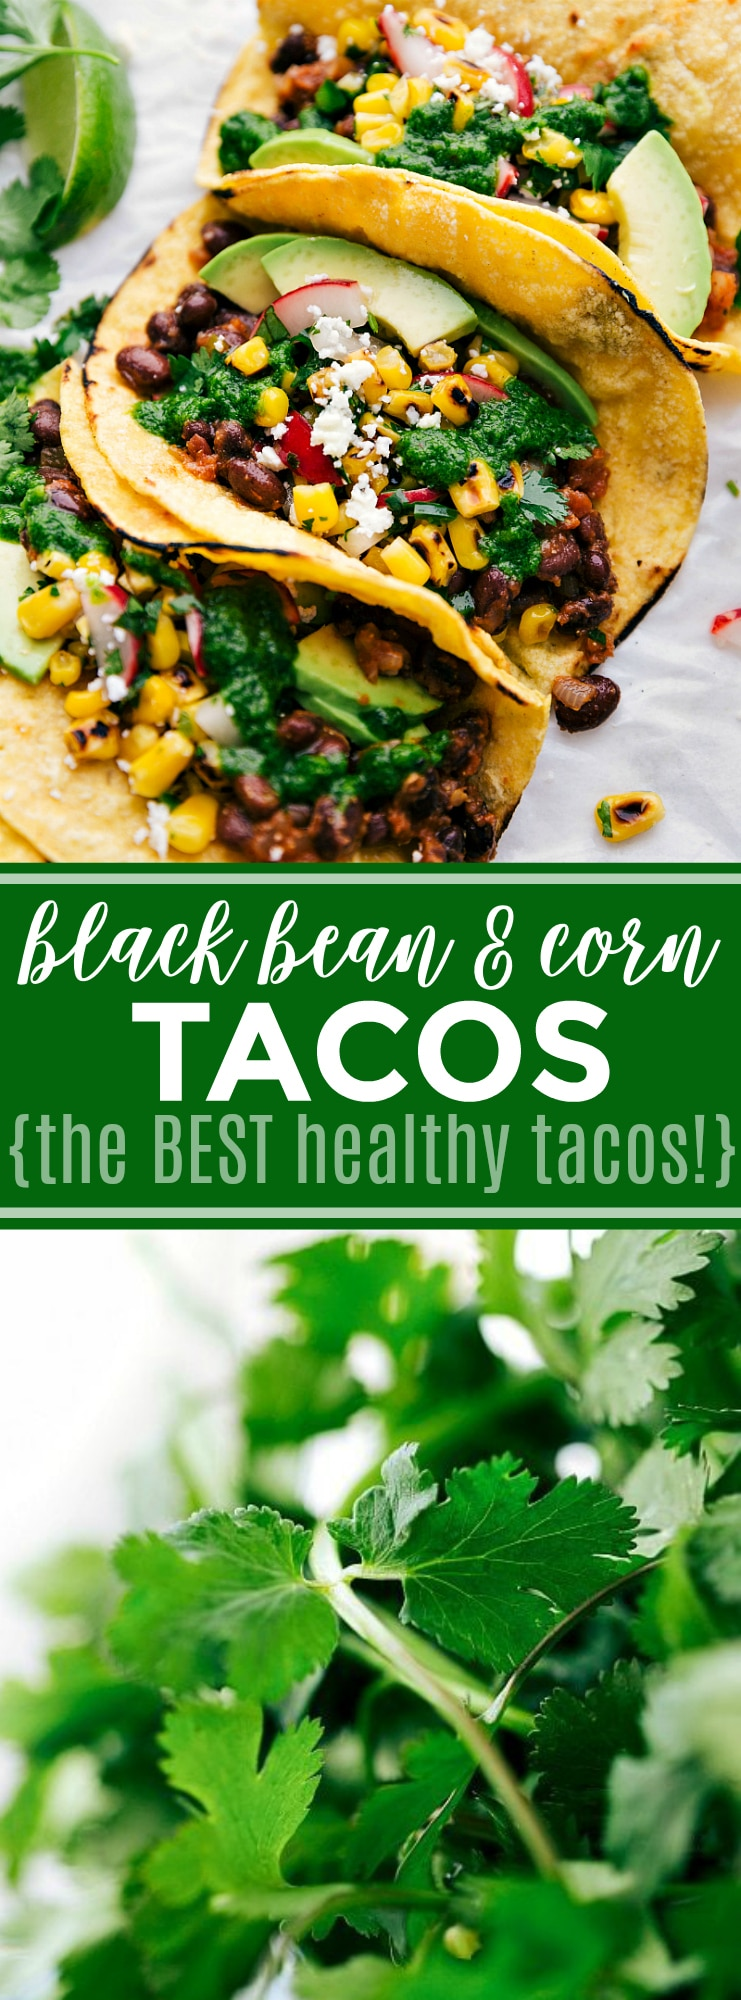 Healthy tacos made with seasoned black beans, a corn relish, fresh avocado, and a delicious cilantro pesto; Made with wholesome, good-for-you ingredients, these are the BEST healthy tacos ever! These tacos are vegetarian, but trust me, you won't be missing the meat! via chelseasmessyapron.com #taco #corn #black #bean #vegetarian #veggie #healthy #easy #quick #tacos #cilantro #avocado